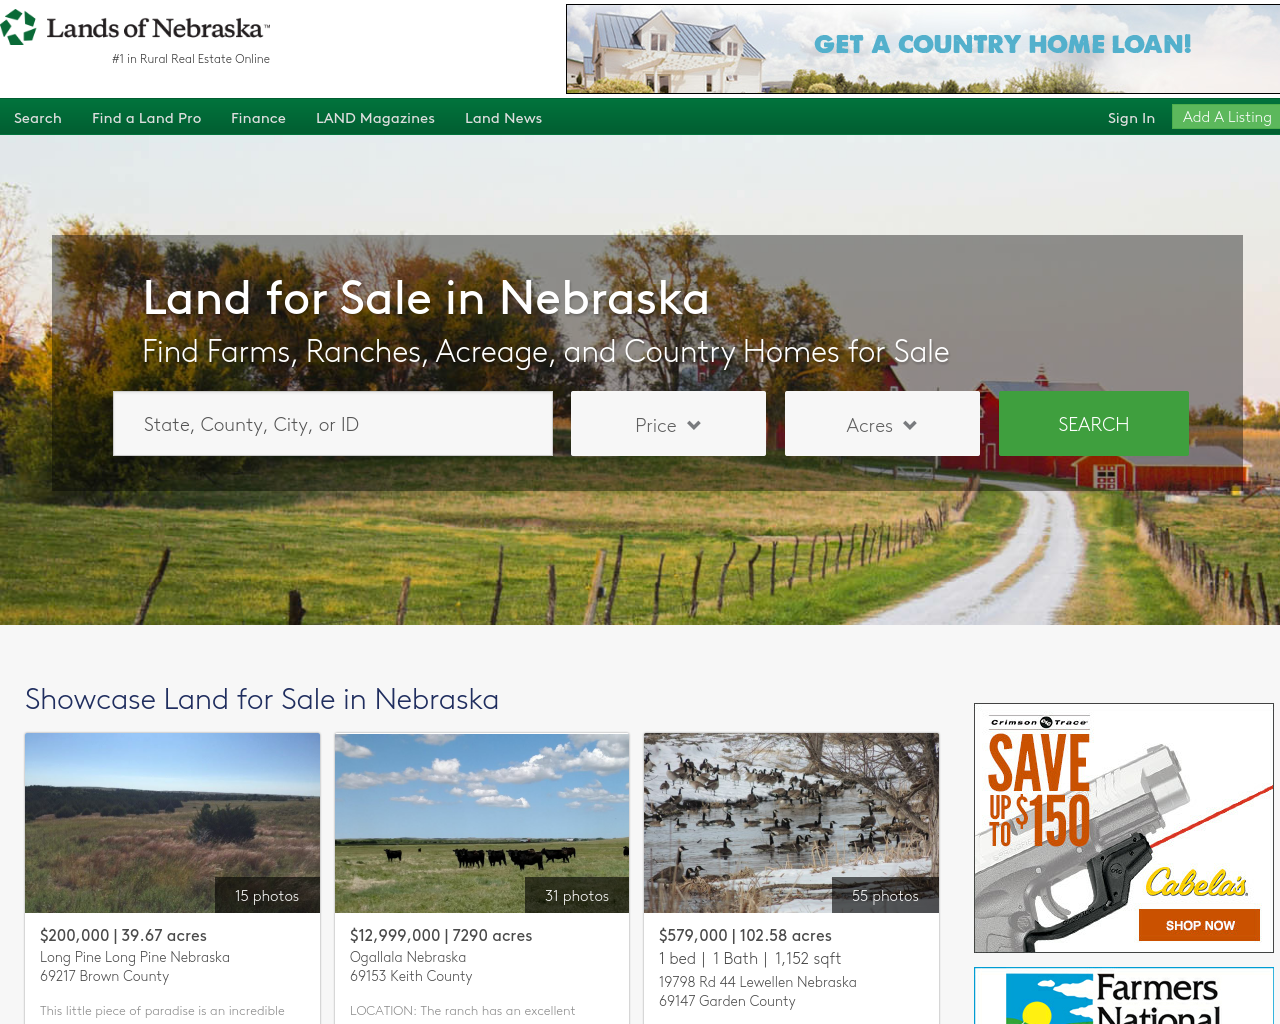 Lands-of-Nebraska-Advertising-Reviews-Pricing